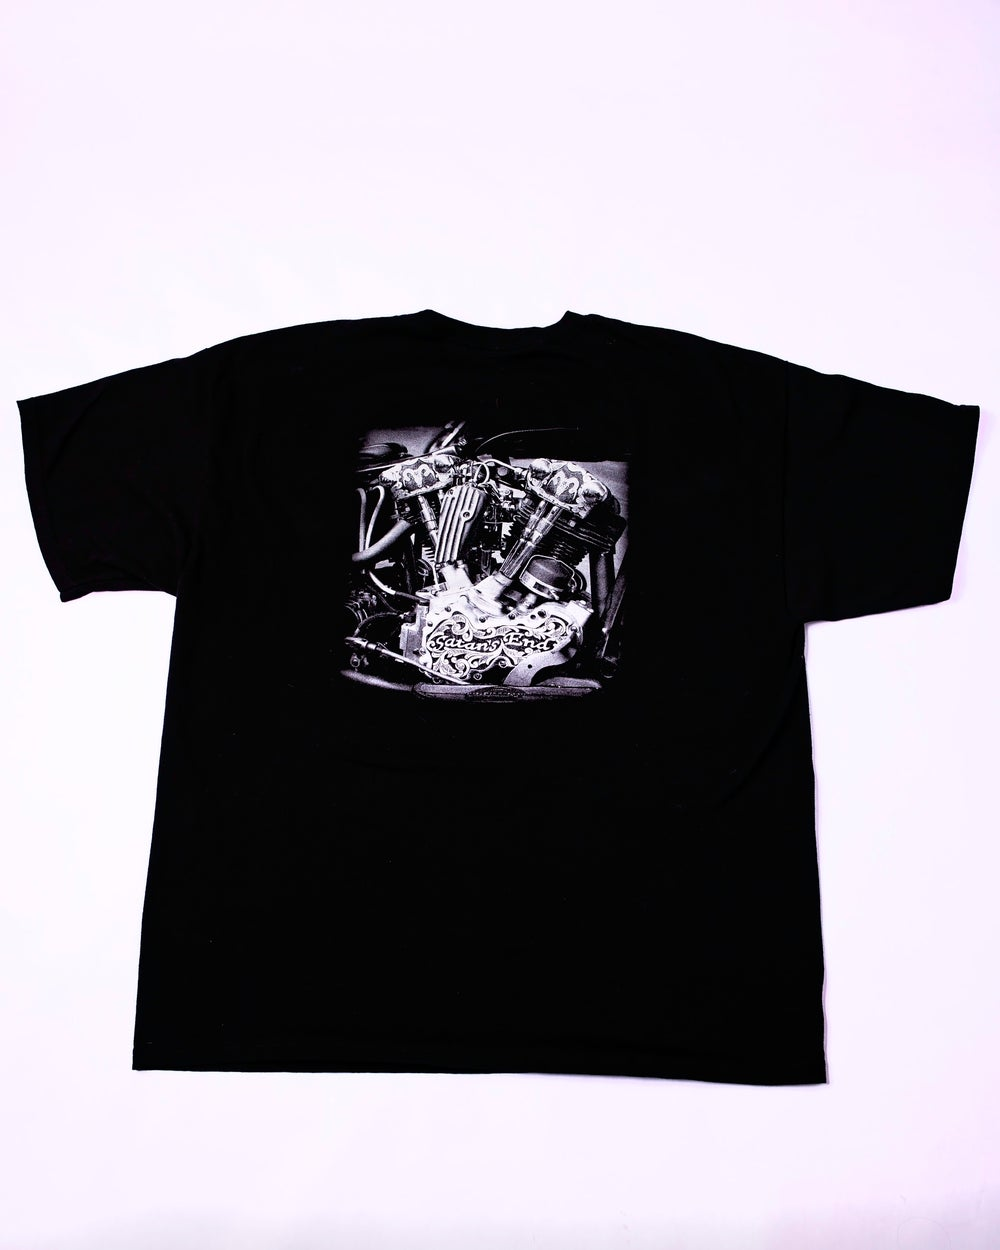 Image of Satan's End T-shirt MENS Sizes